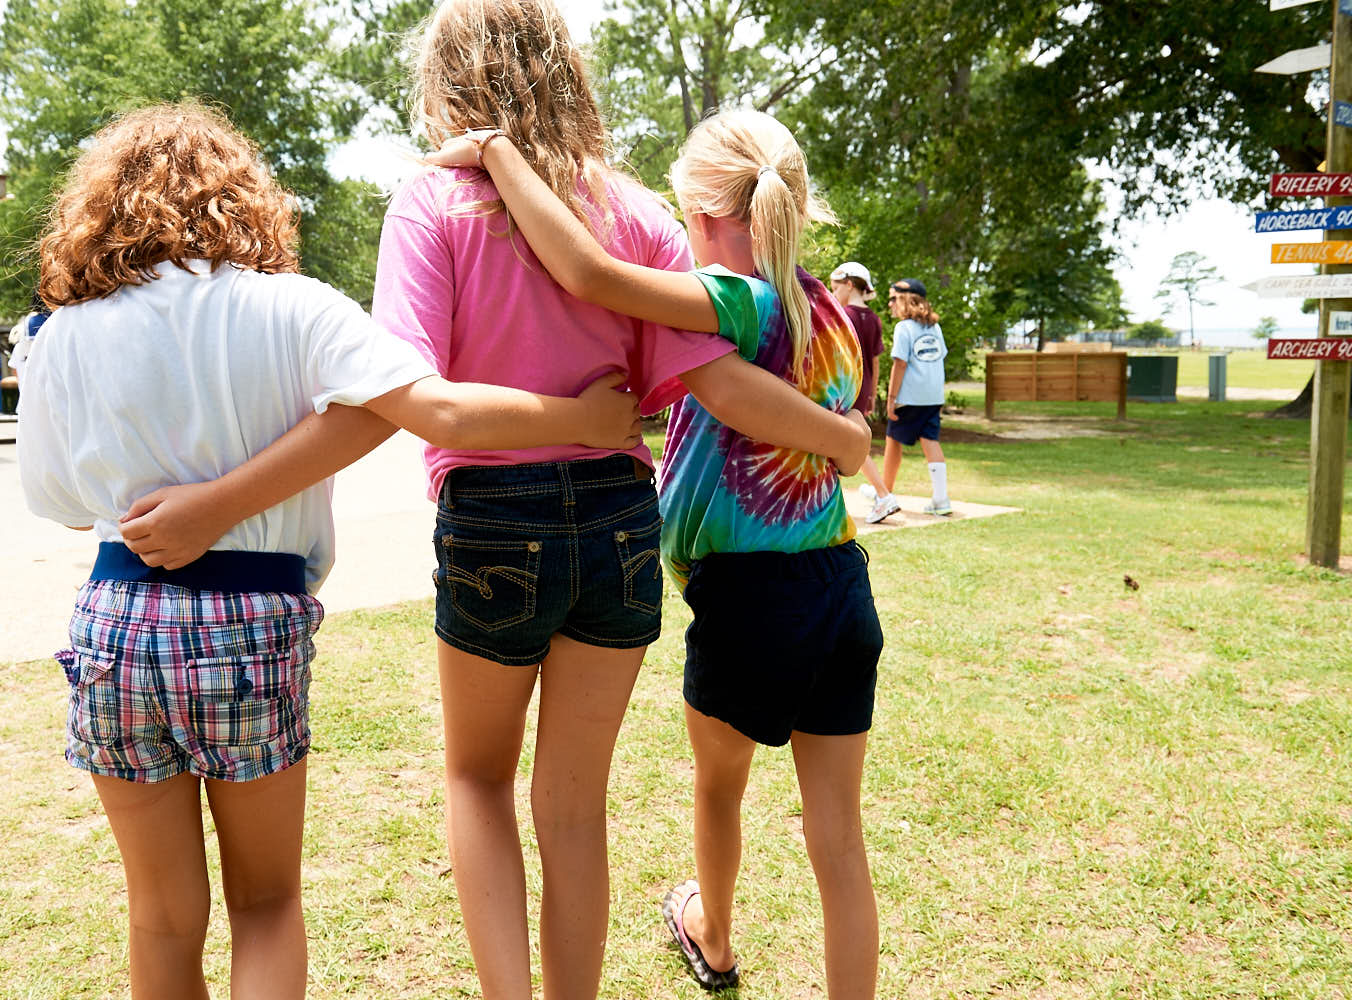 Friends at Camp Seafarer walk back to their cabin together